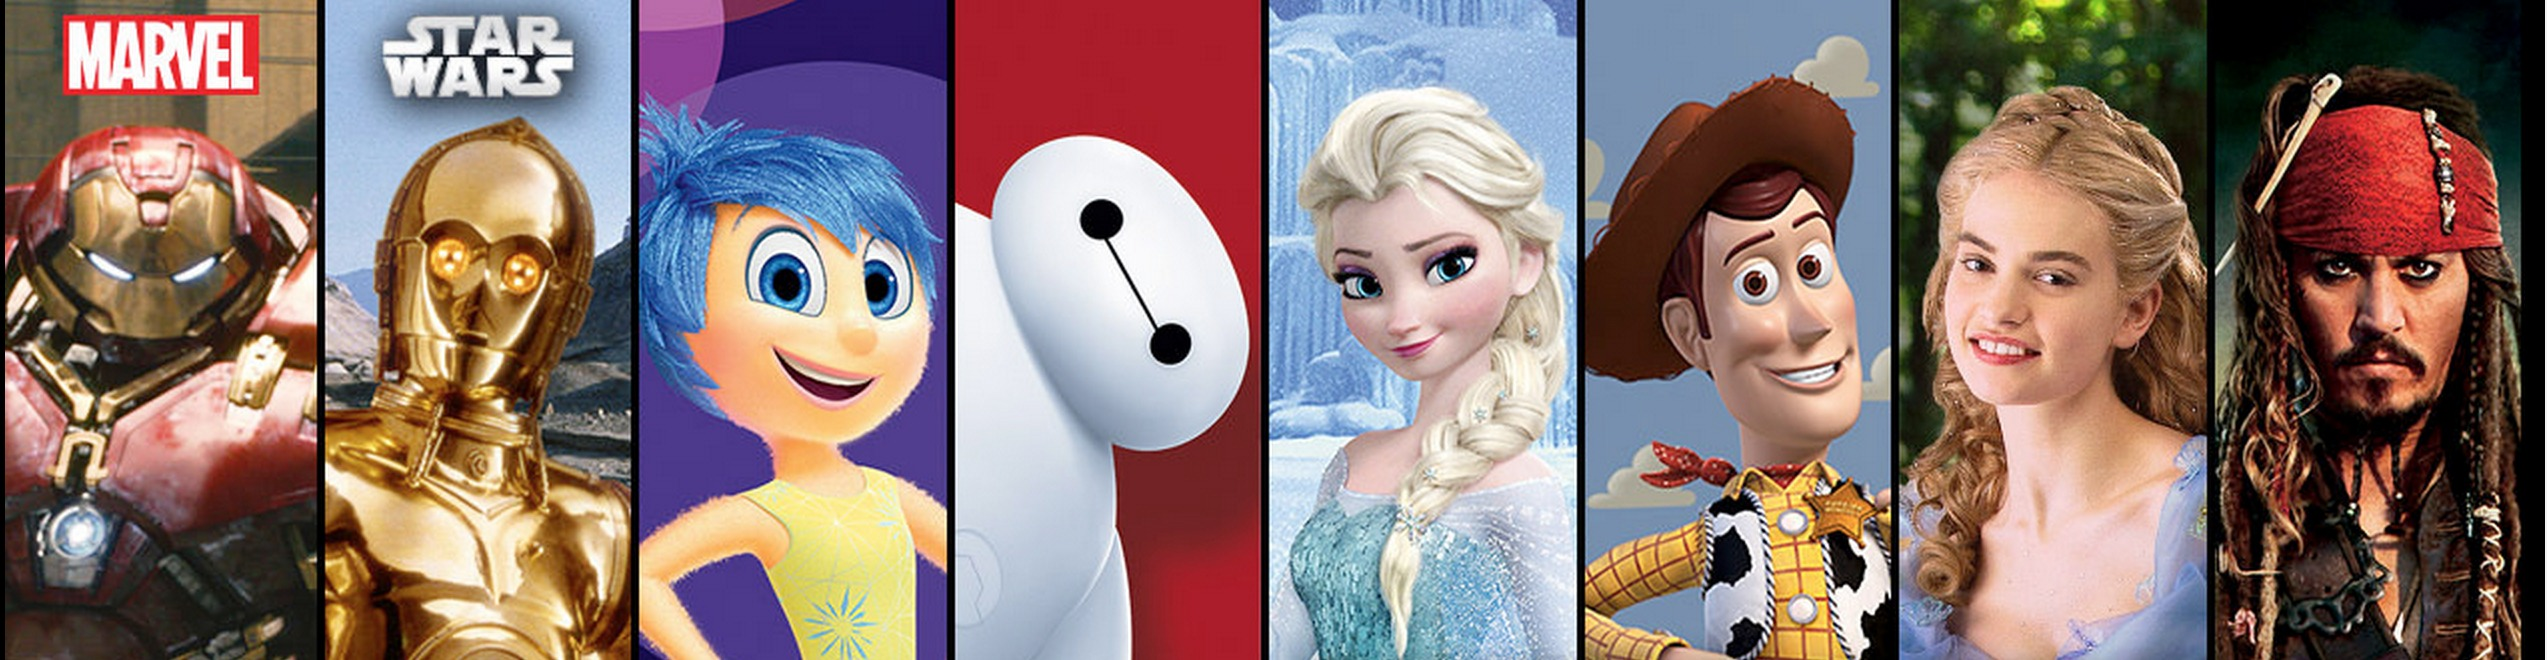 disney movies official site - 1560×548